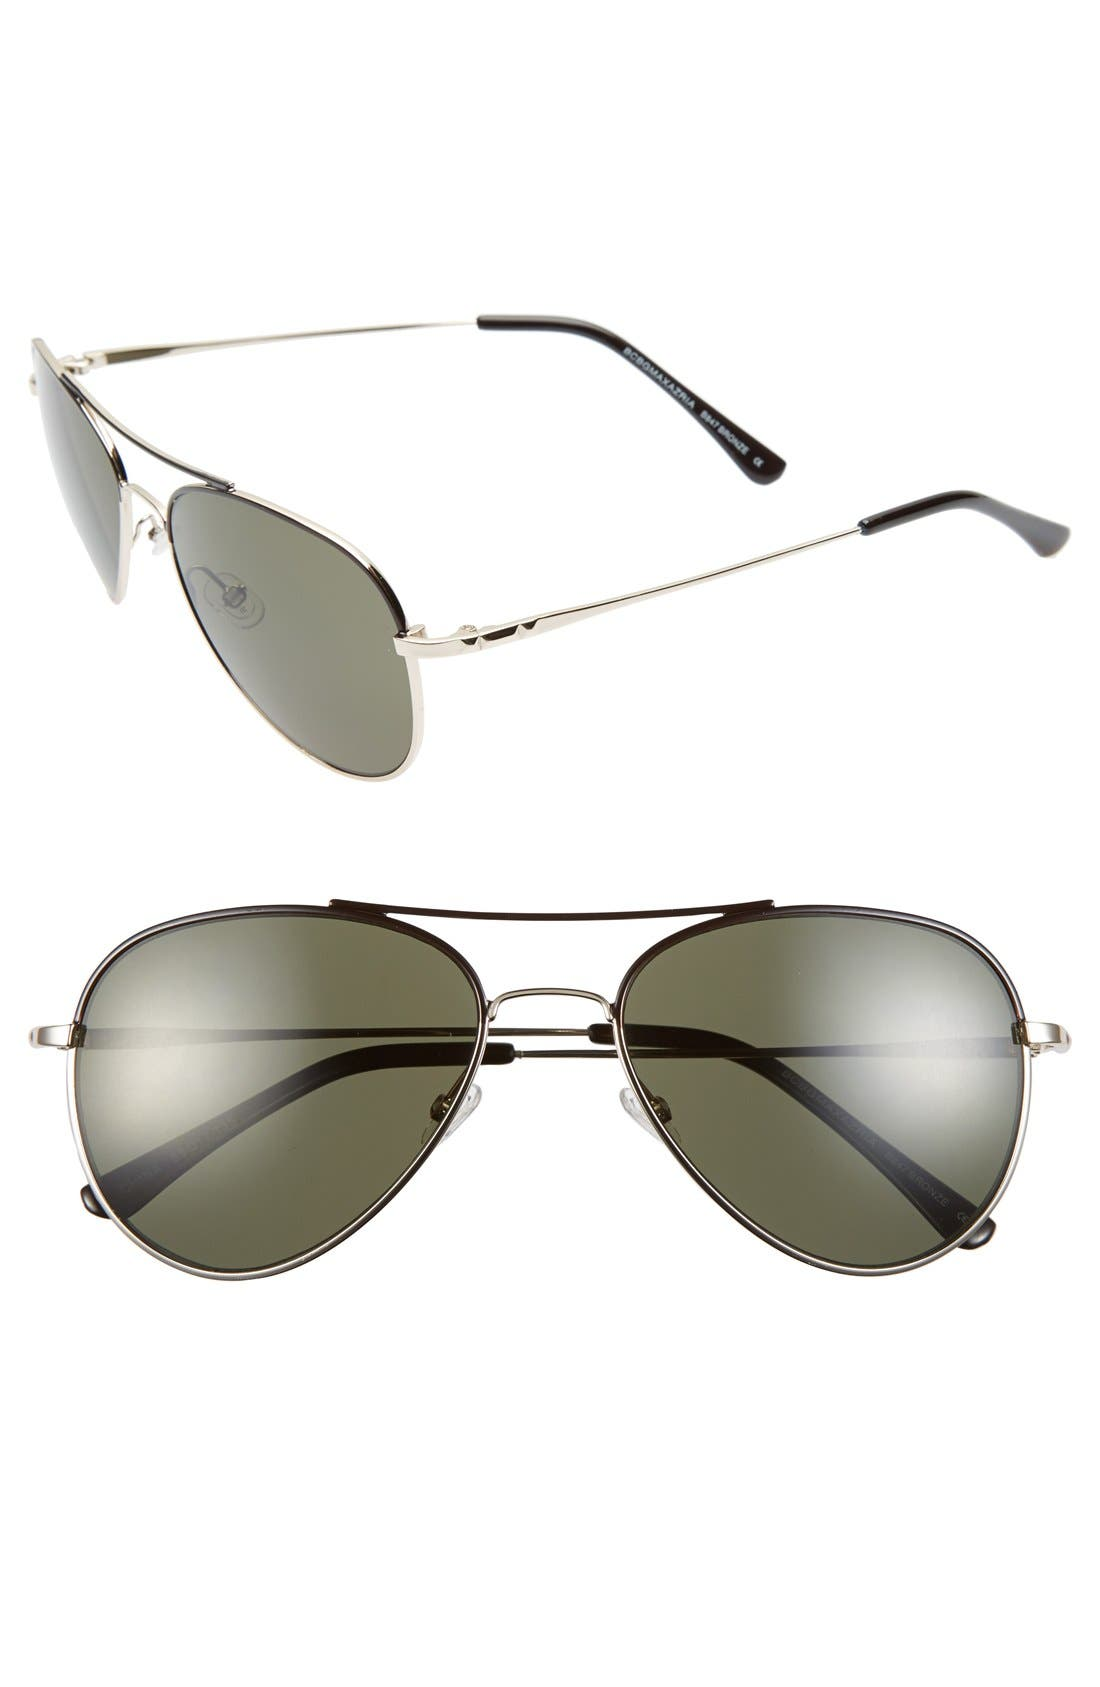 Alternate Image 1 Selected - BCBGMAXAZRIA 55mm Aviator Sunglasses